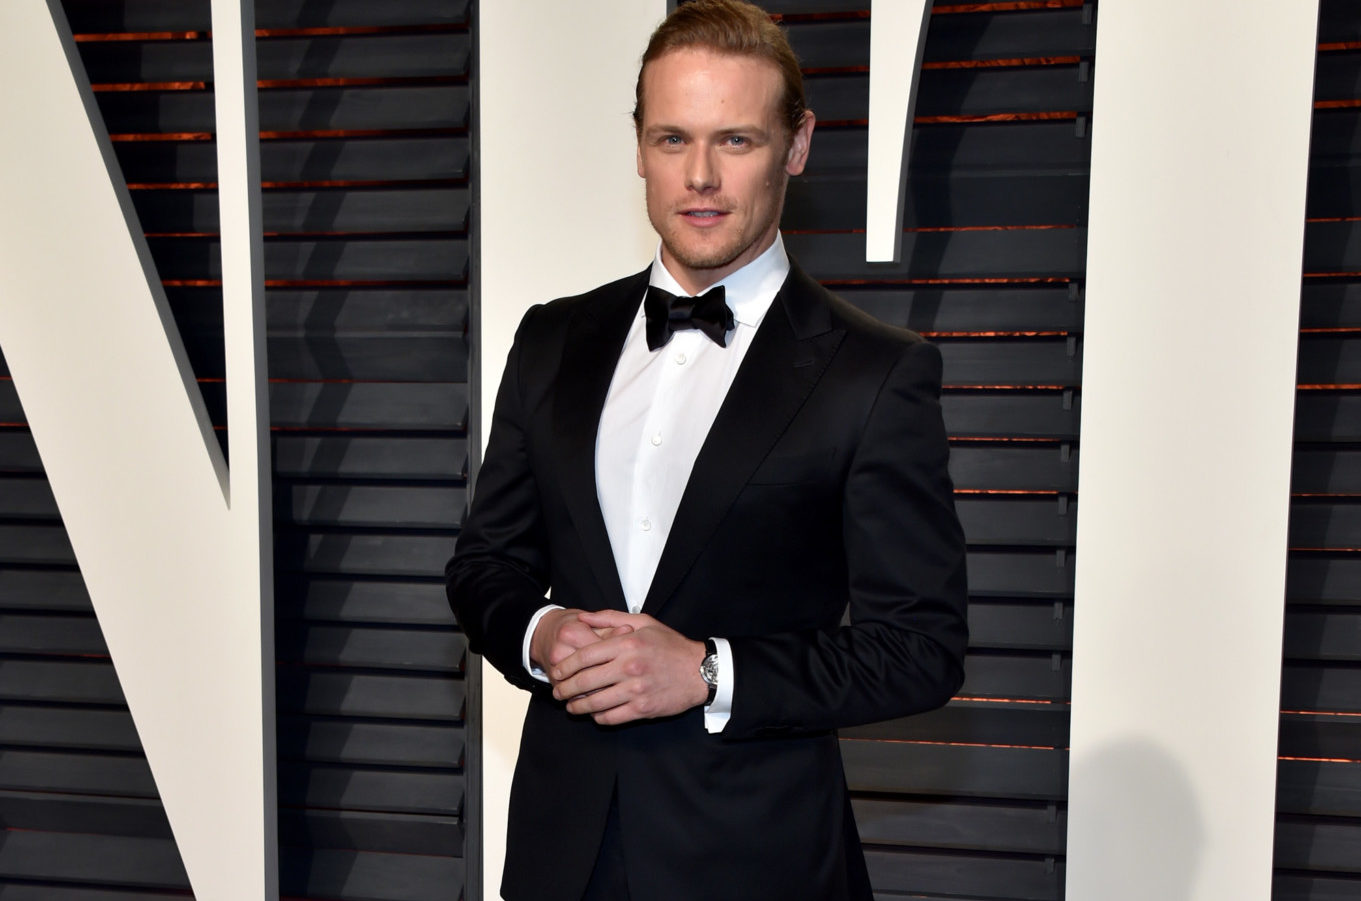 BEVERLY HILLS, CA - FEBRUARY 26: Actor Sam Heughan attends the 2017 Vanity Fair Oscar Party hosted by Graydon Carter at Wallis Annenberg Center for the Performing Arts on February 26, 2017 in Beverly Hills, California. (Photo by Pascal Le Segretain/Getty Images)